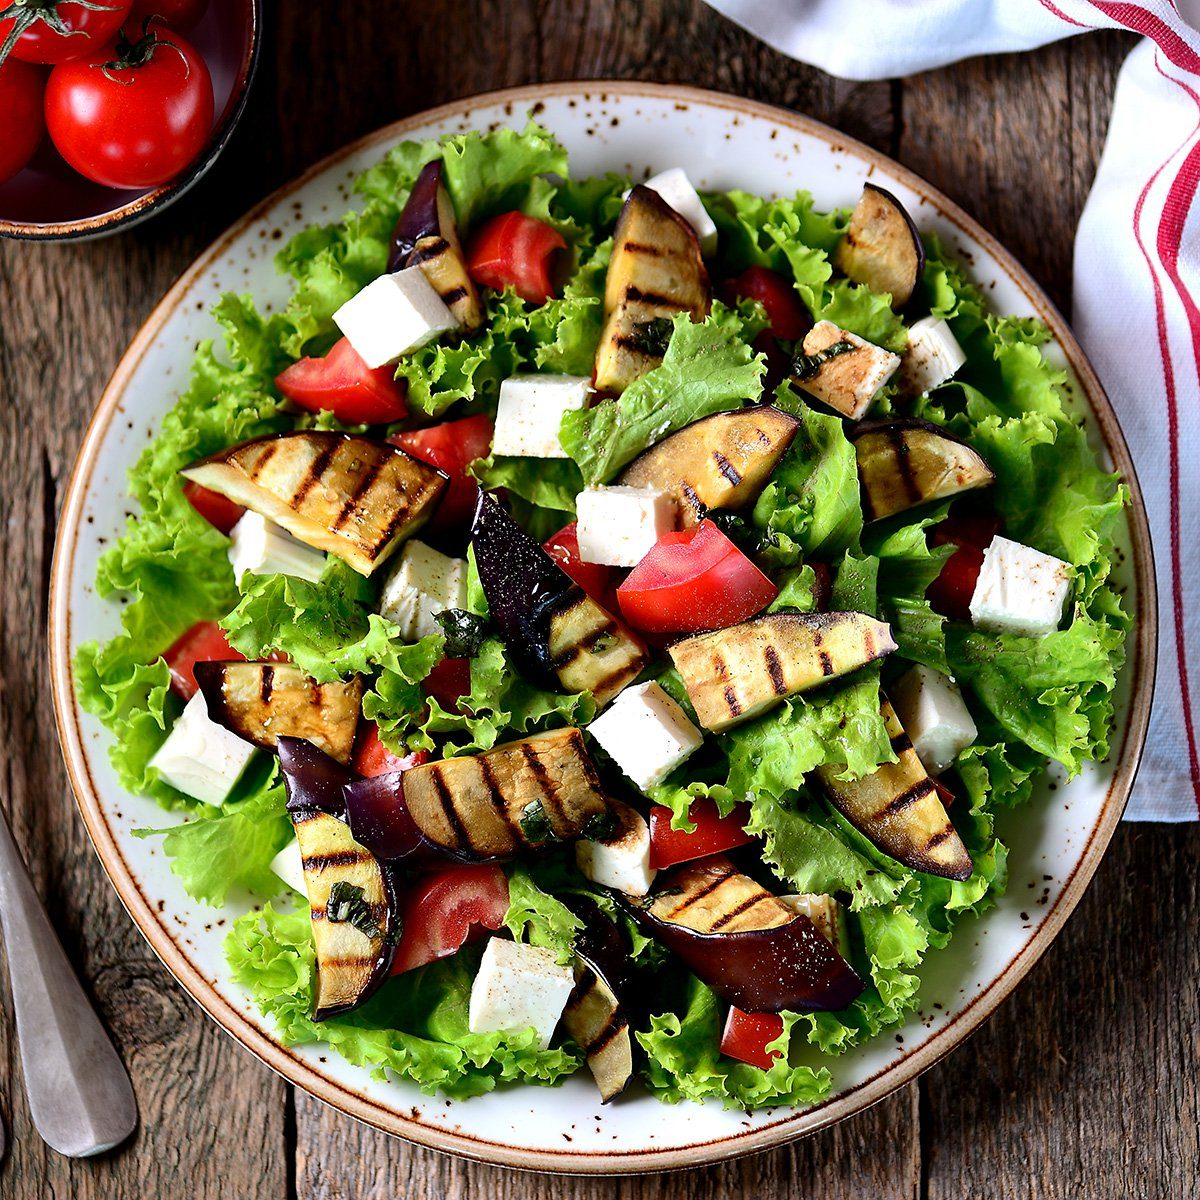 Grilled eggplant salad, tomatoes, feta and lettuce with olive oil and red balsamic, sea salt and pink pepper.